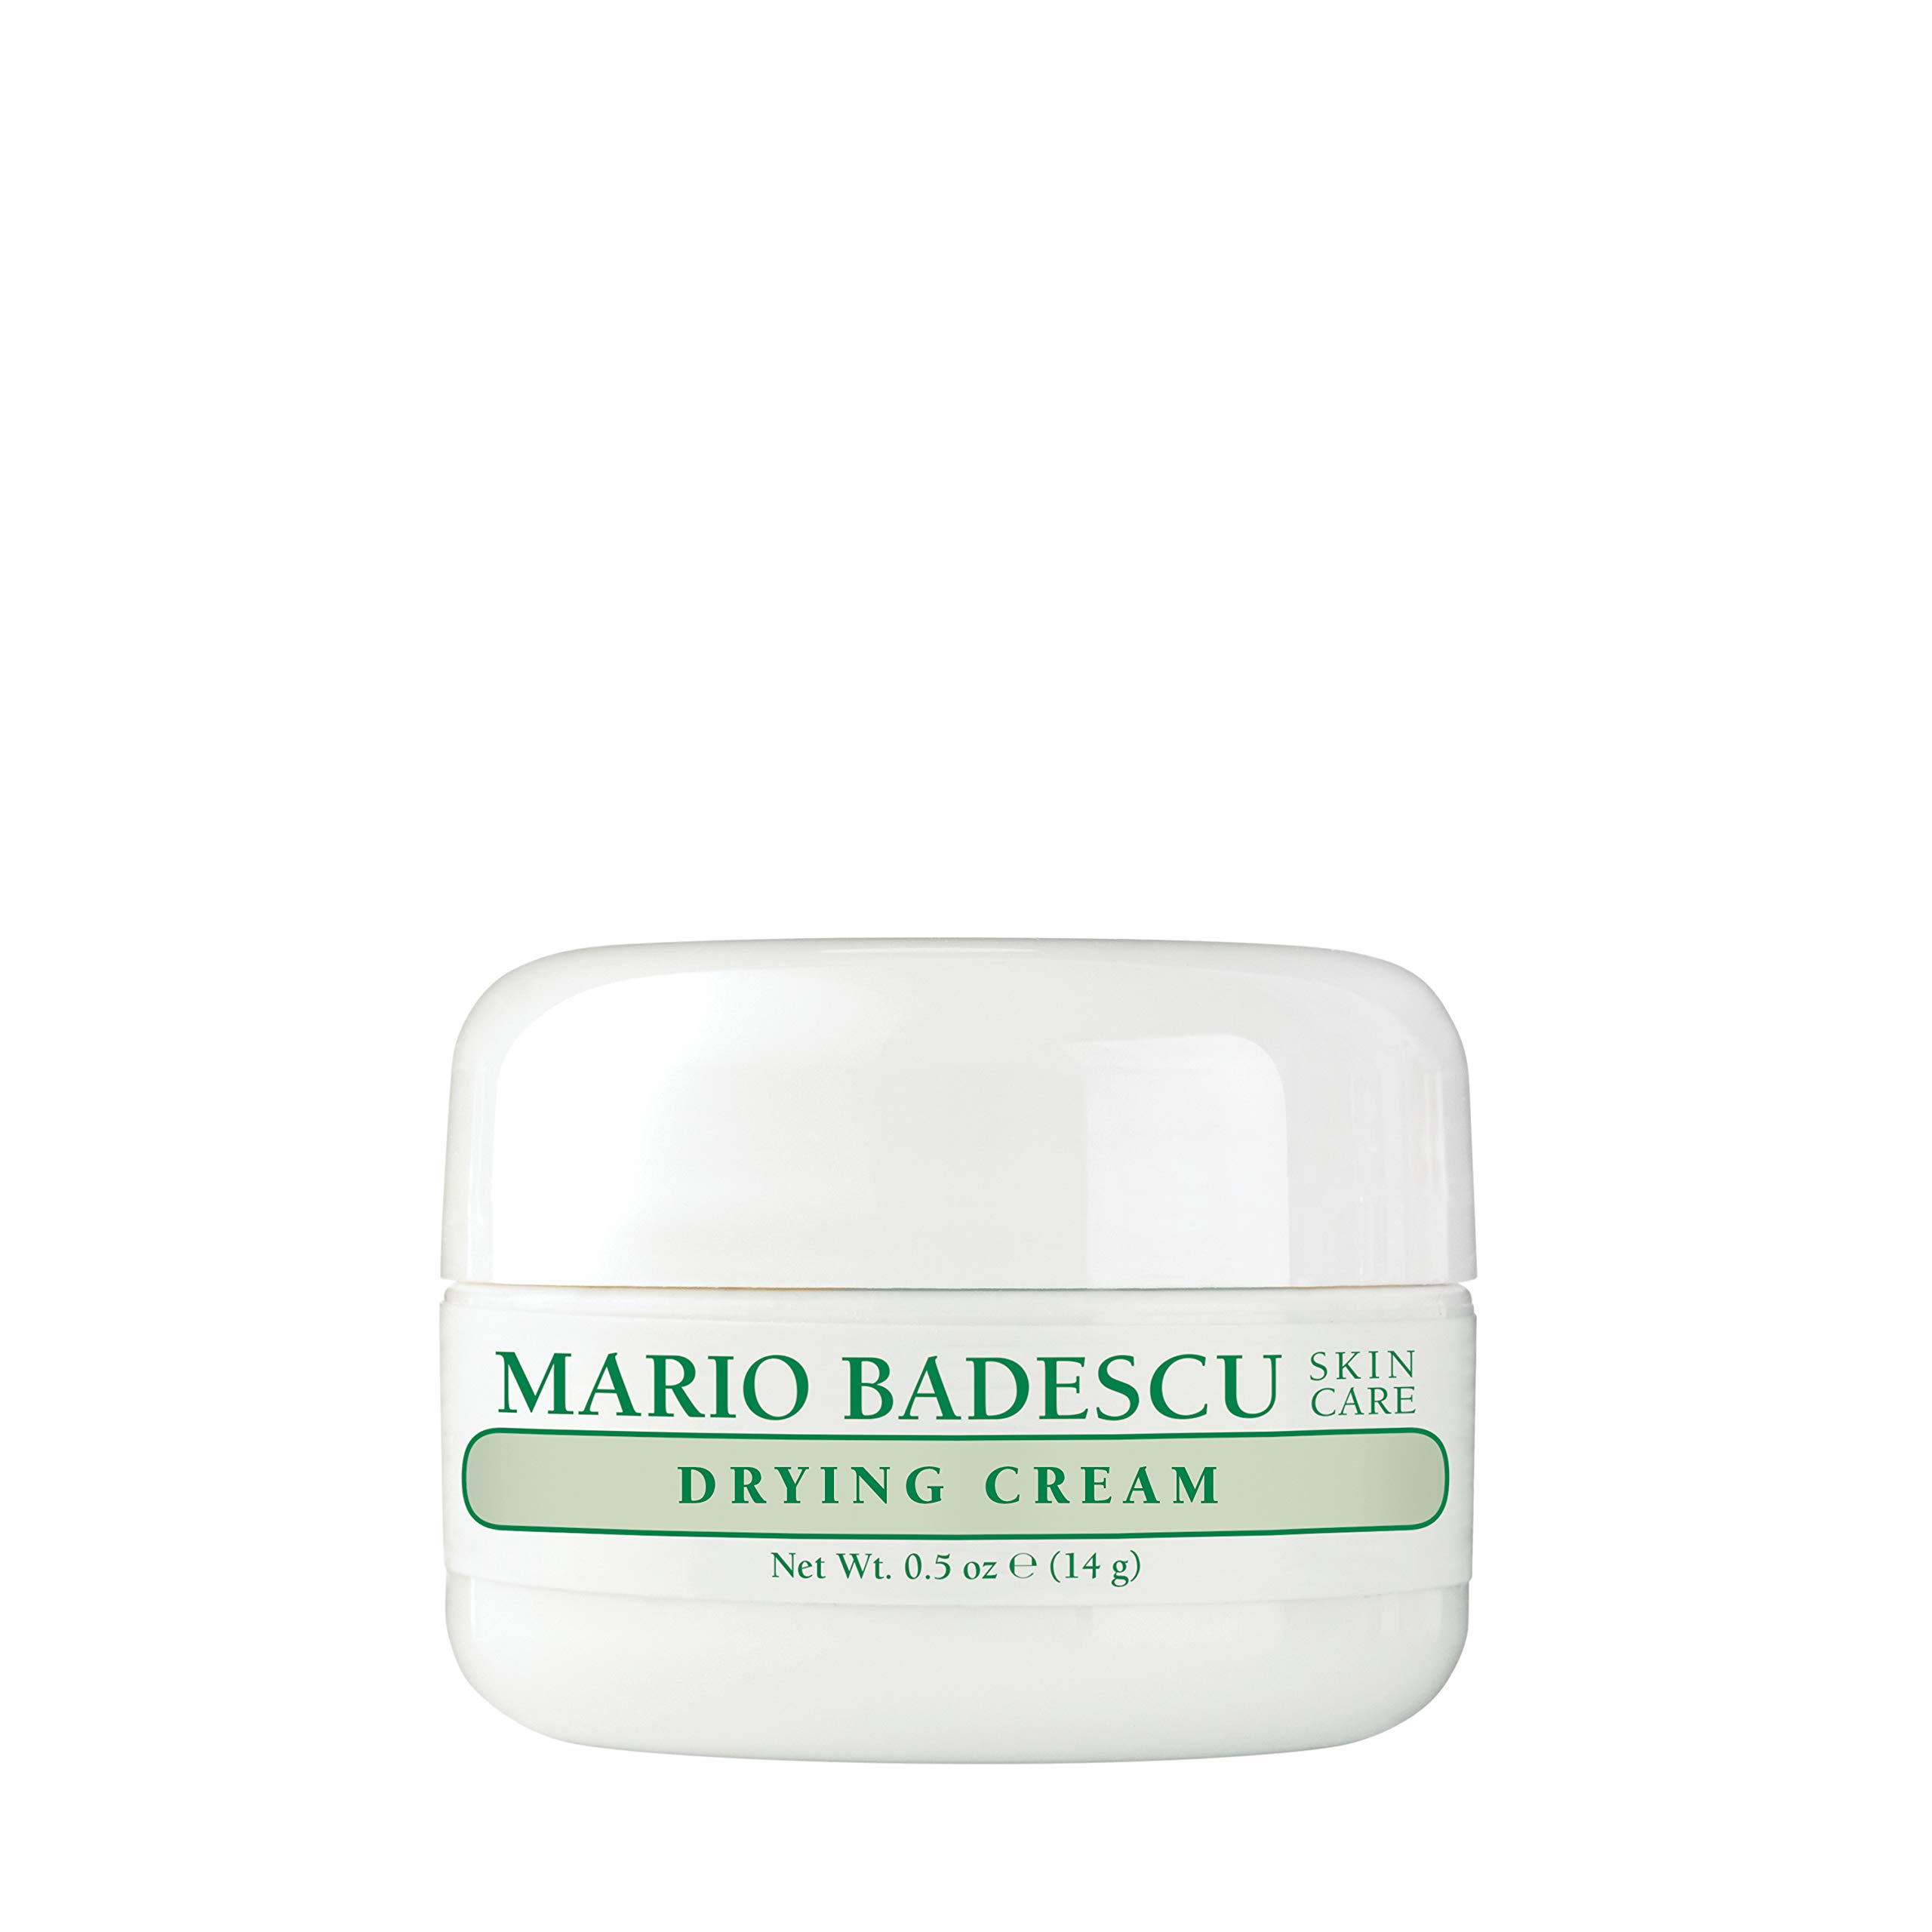 Mario Badescu Drying Cream, 0.5 oz